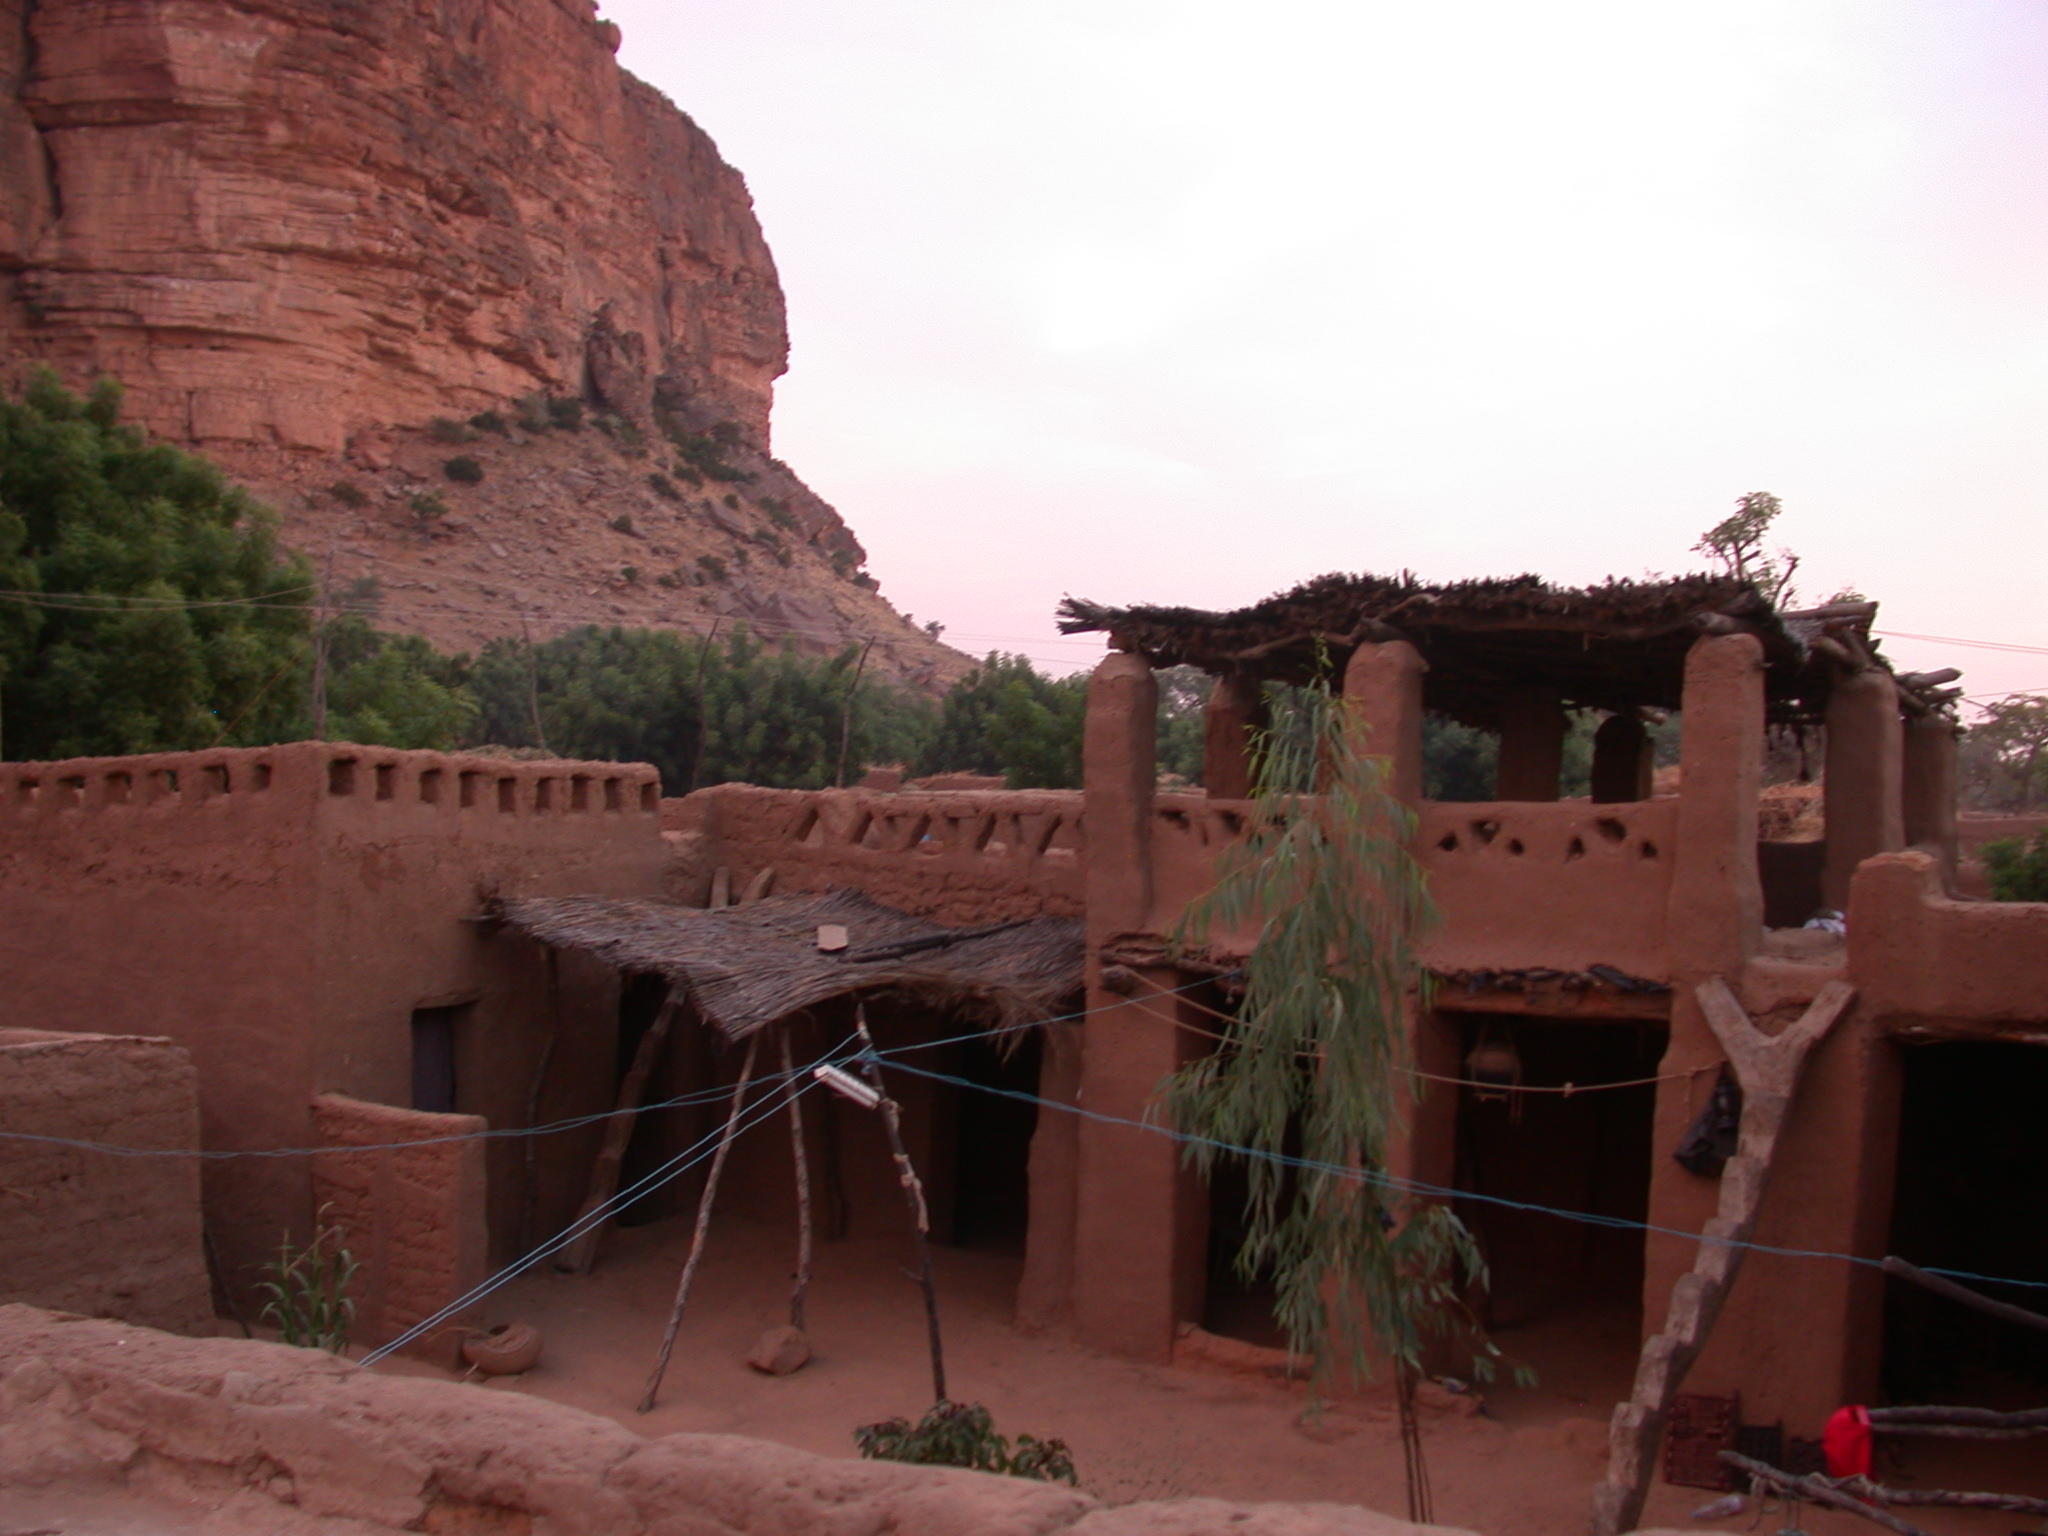 Hotel in Telli Village, Dogon Country, Mali